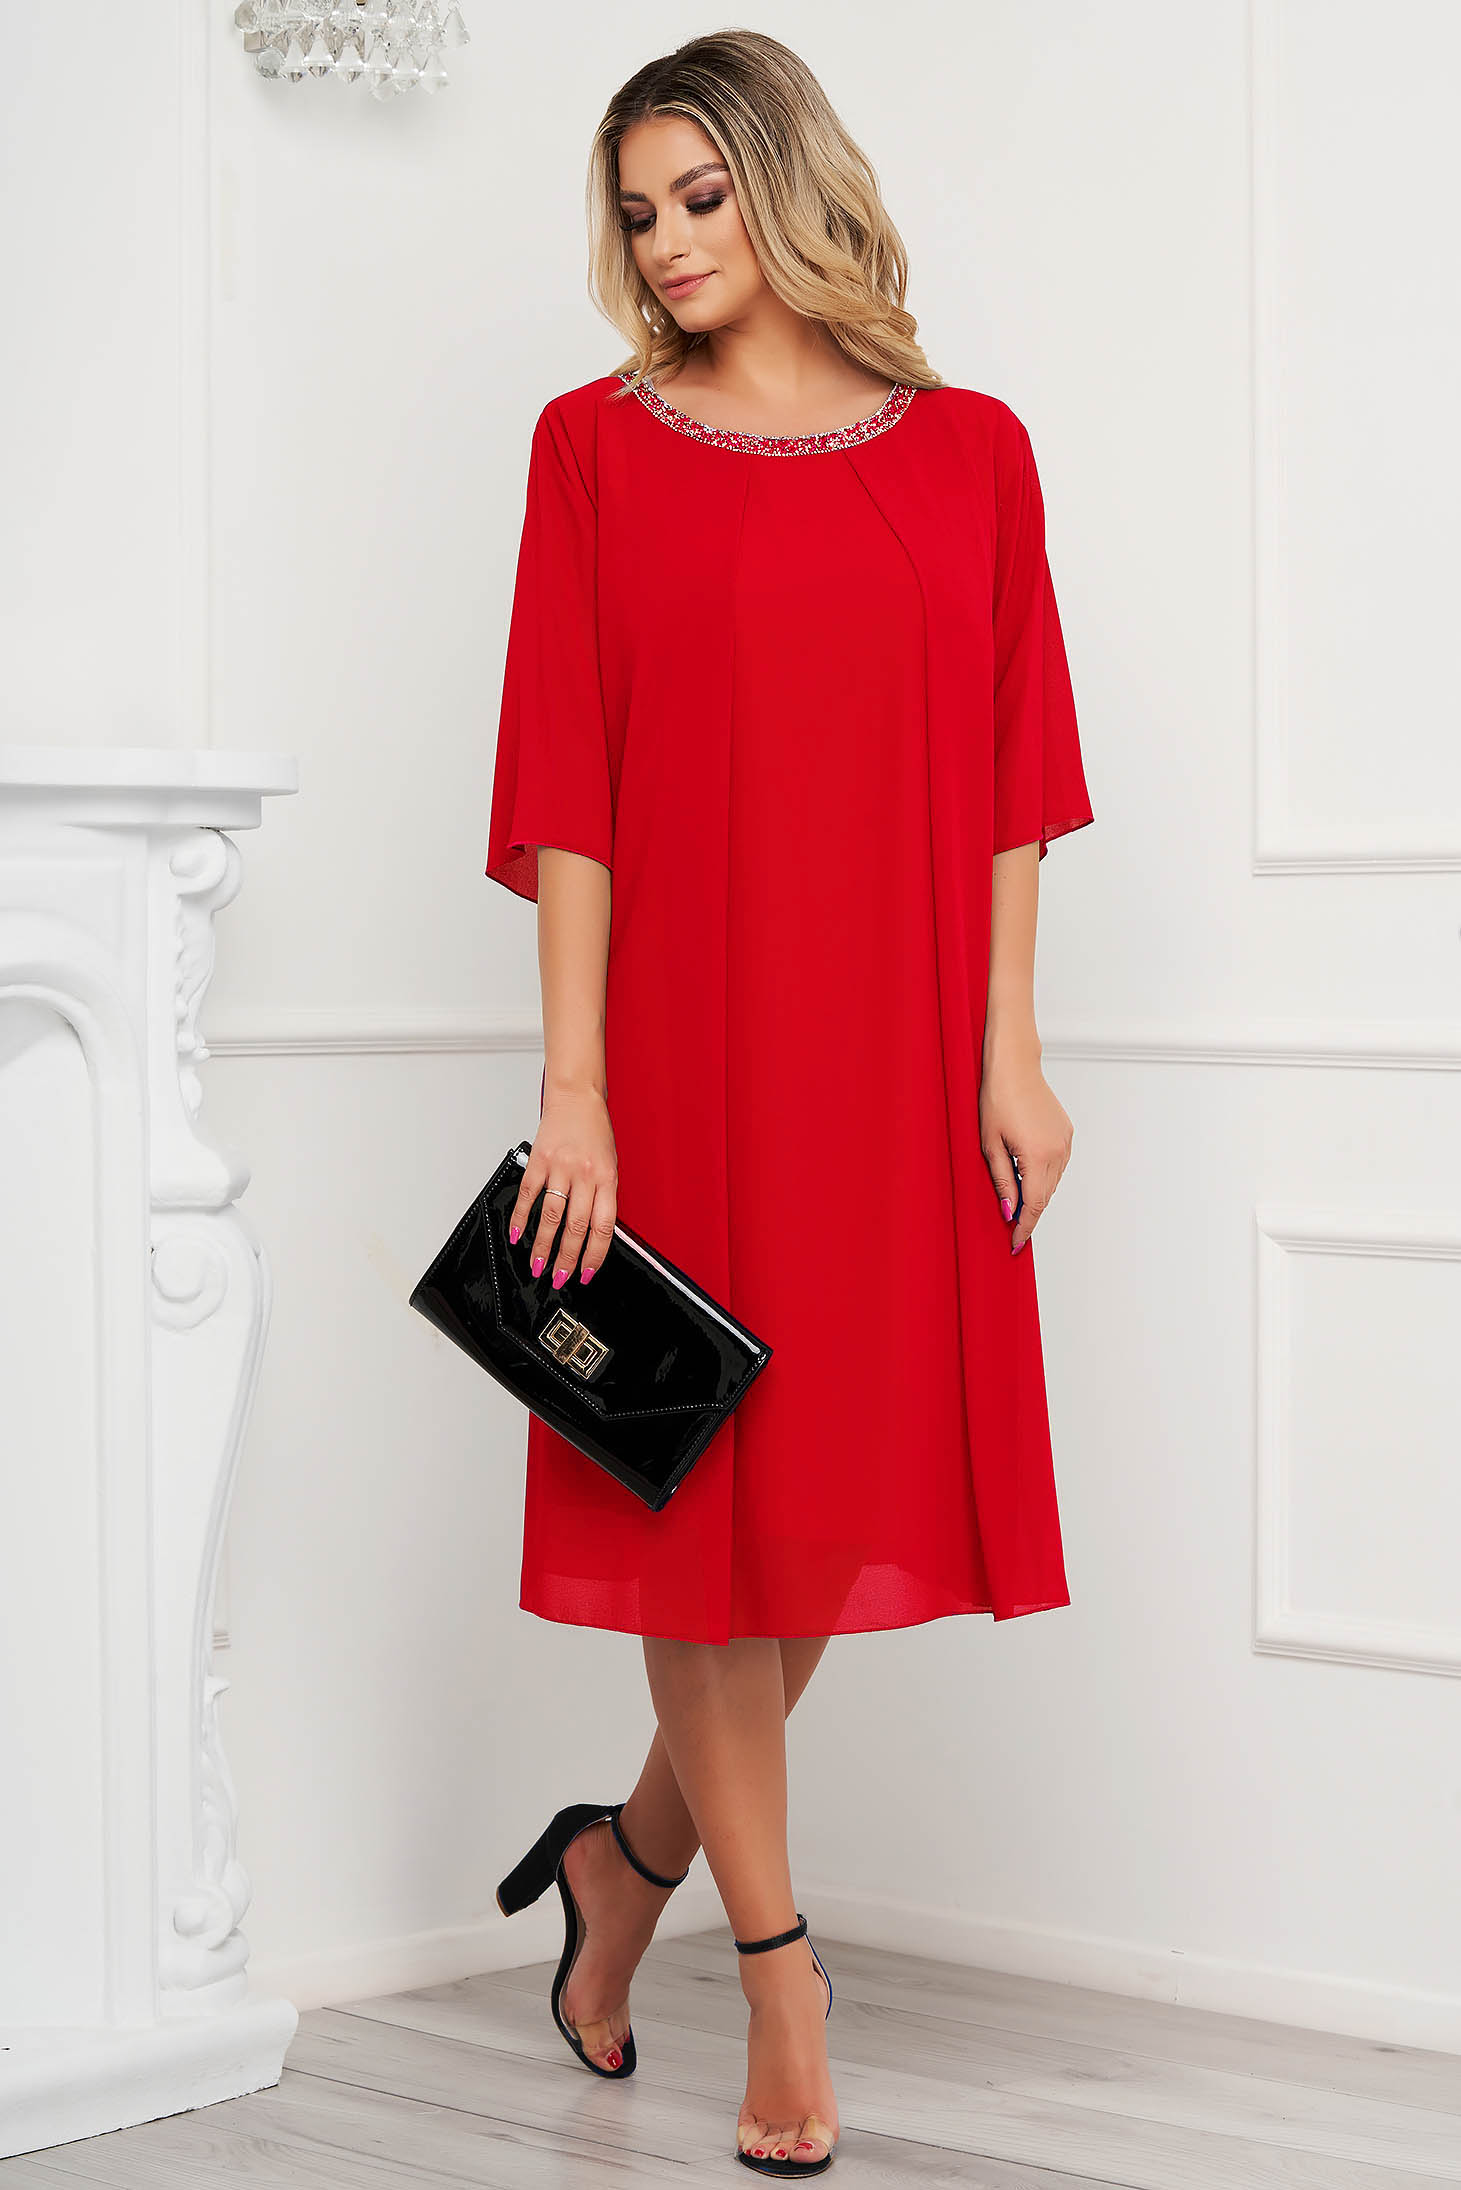 From veil fabric midi loose fit with crystal embellished details red dress occasional